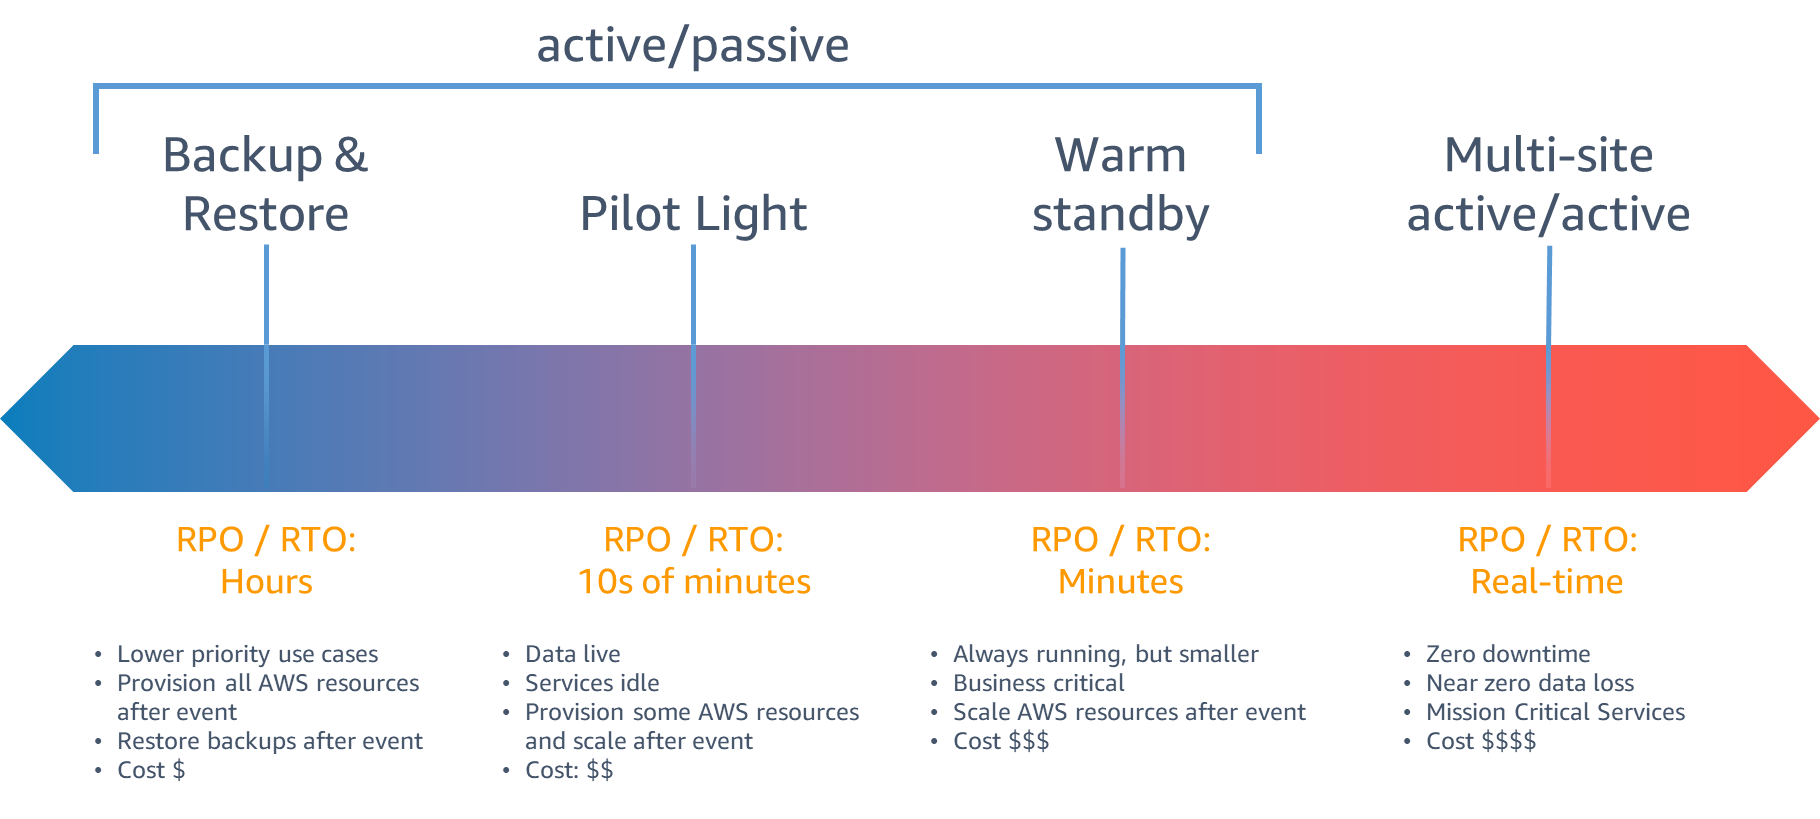 DR strategies – trade-offs between RTO/RPO and costs